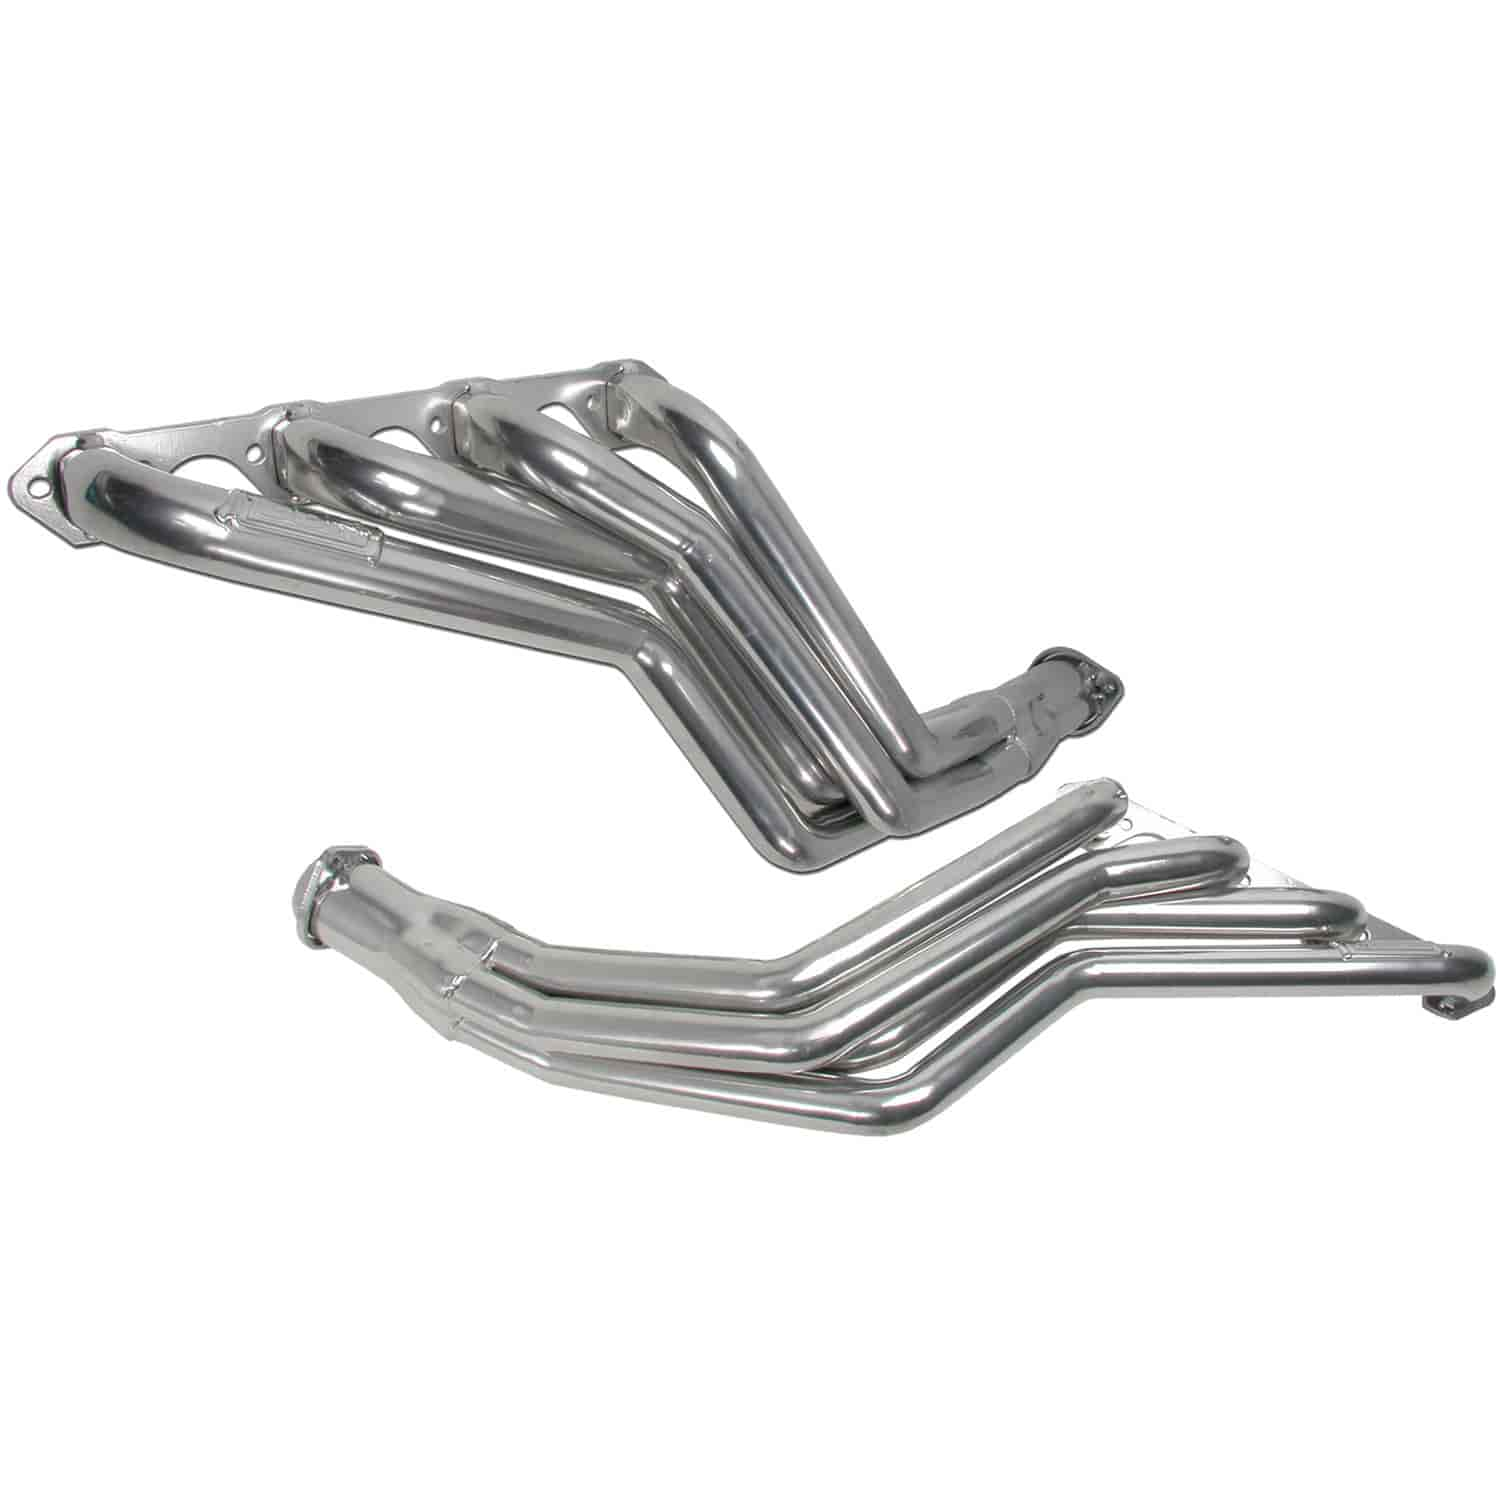 BBK Performance Products 15160 - BBK Mustang Headers